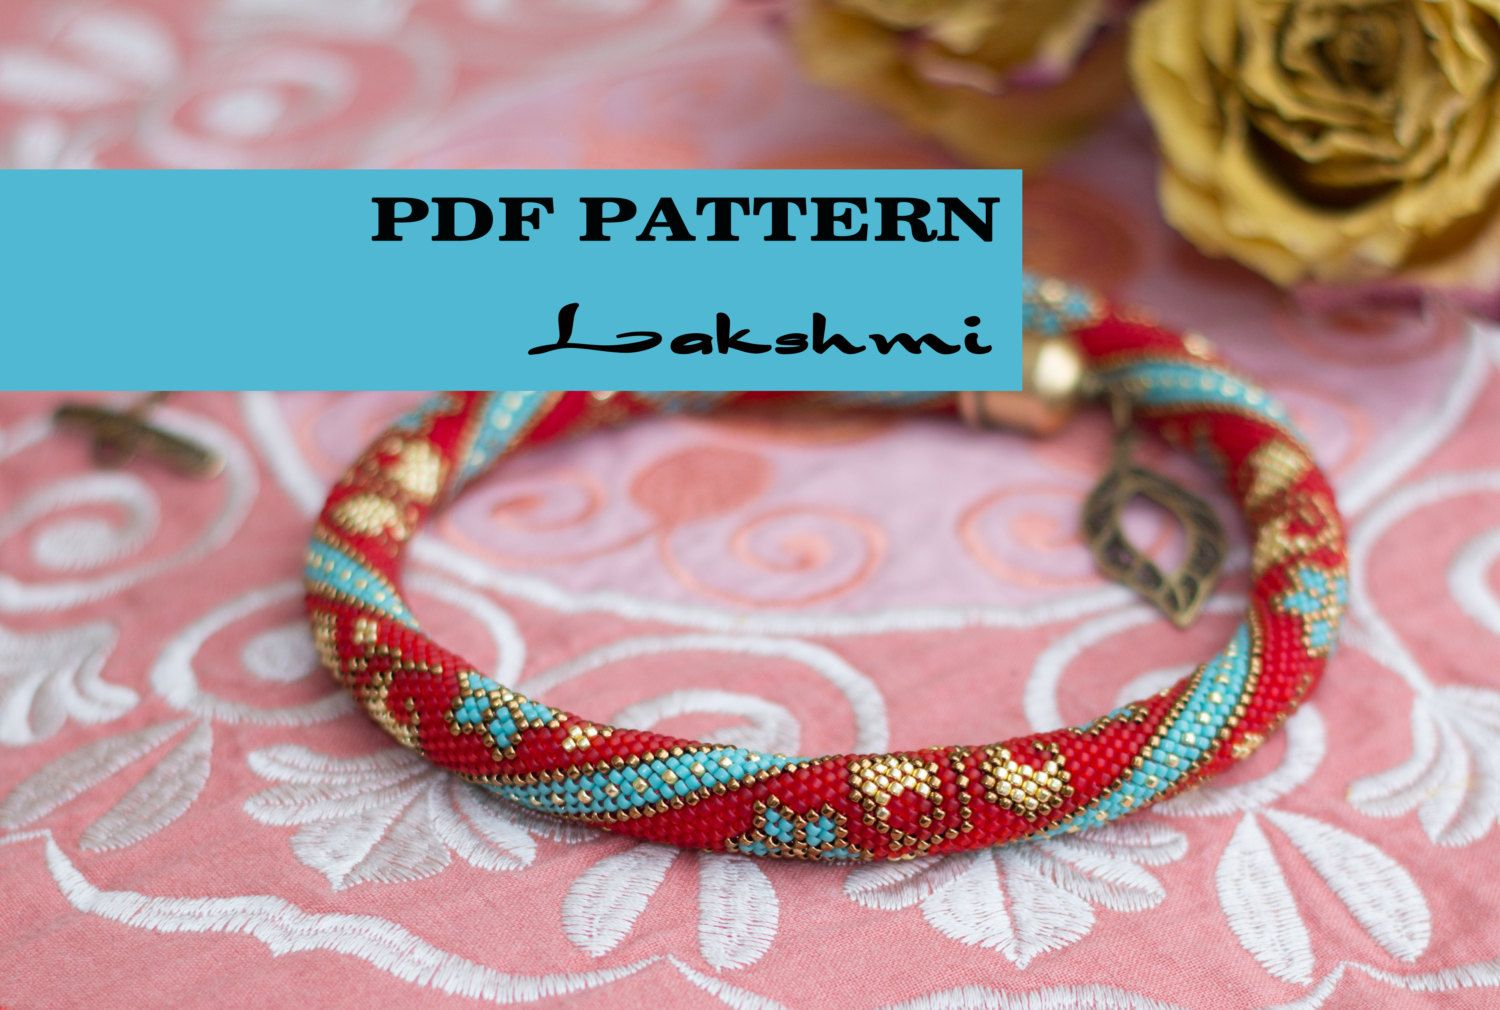 PDF Pattern for beaded crochet necklace - Seed bead crochet rope ...